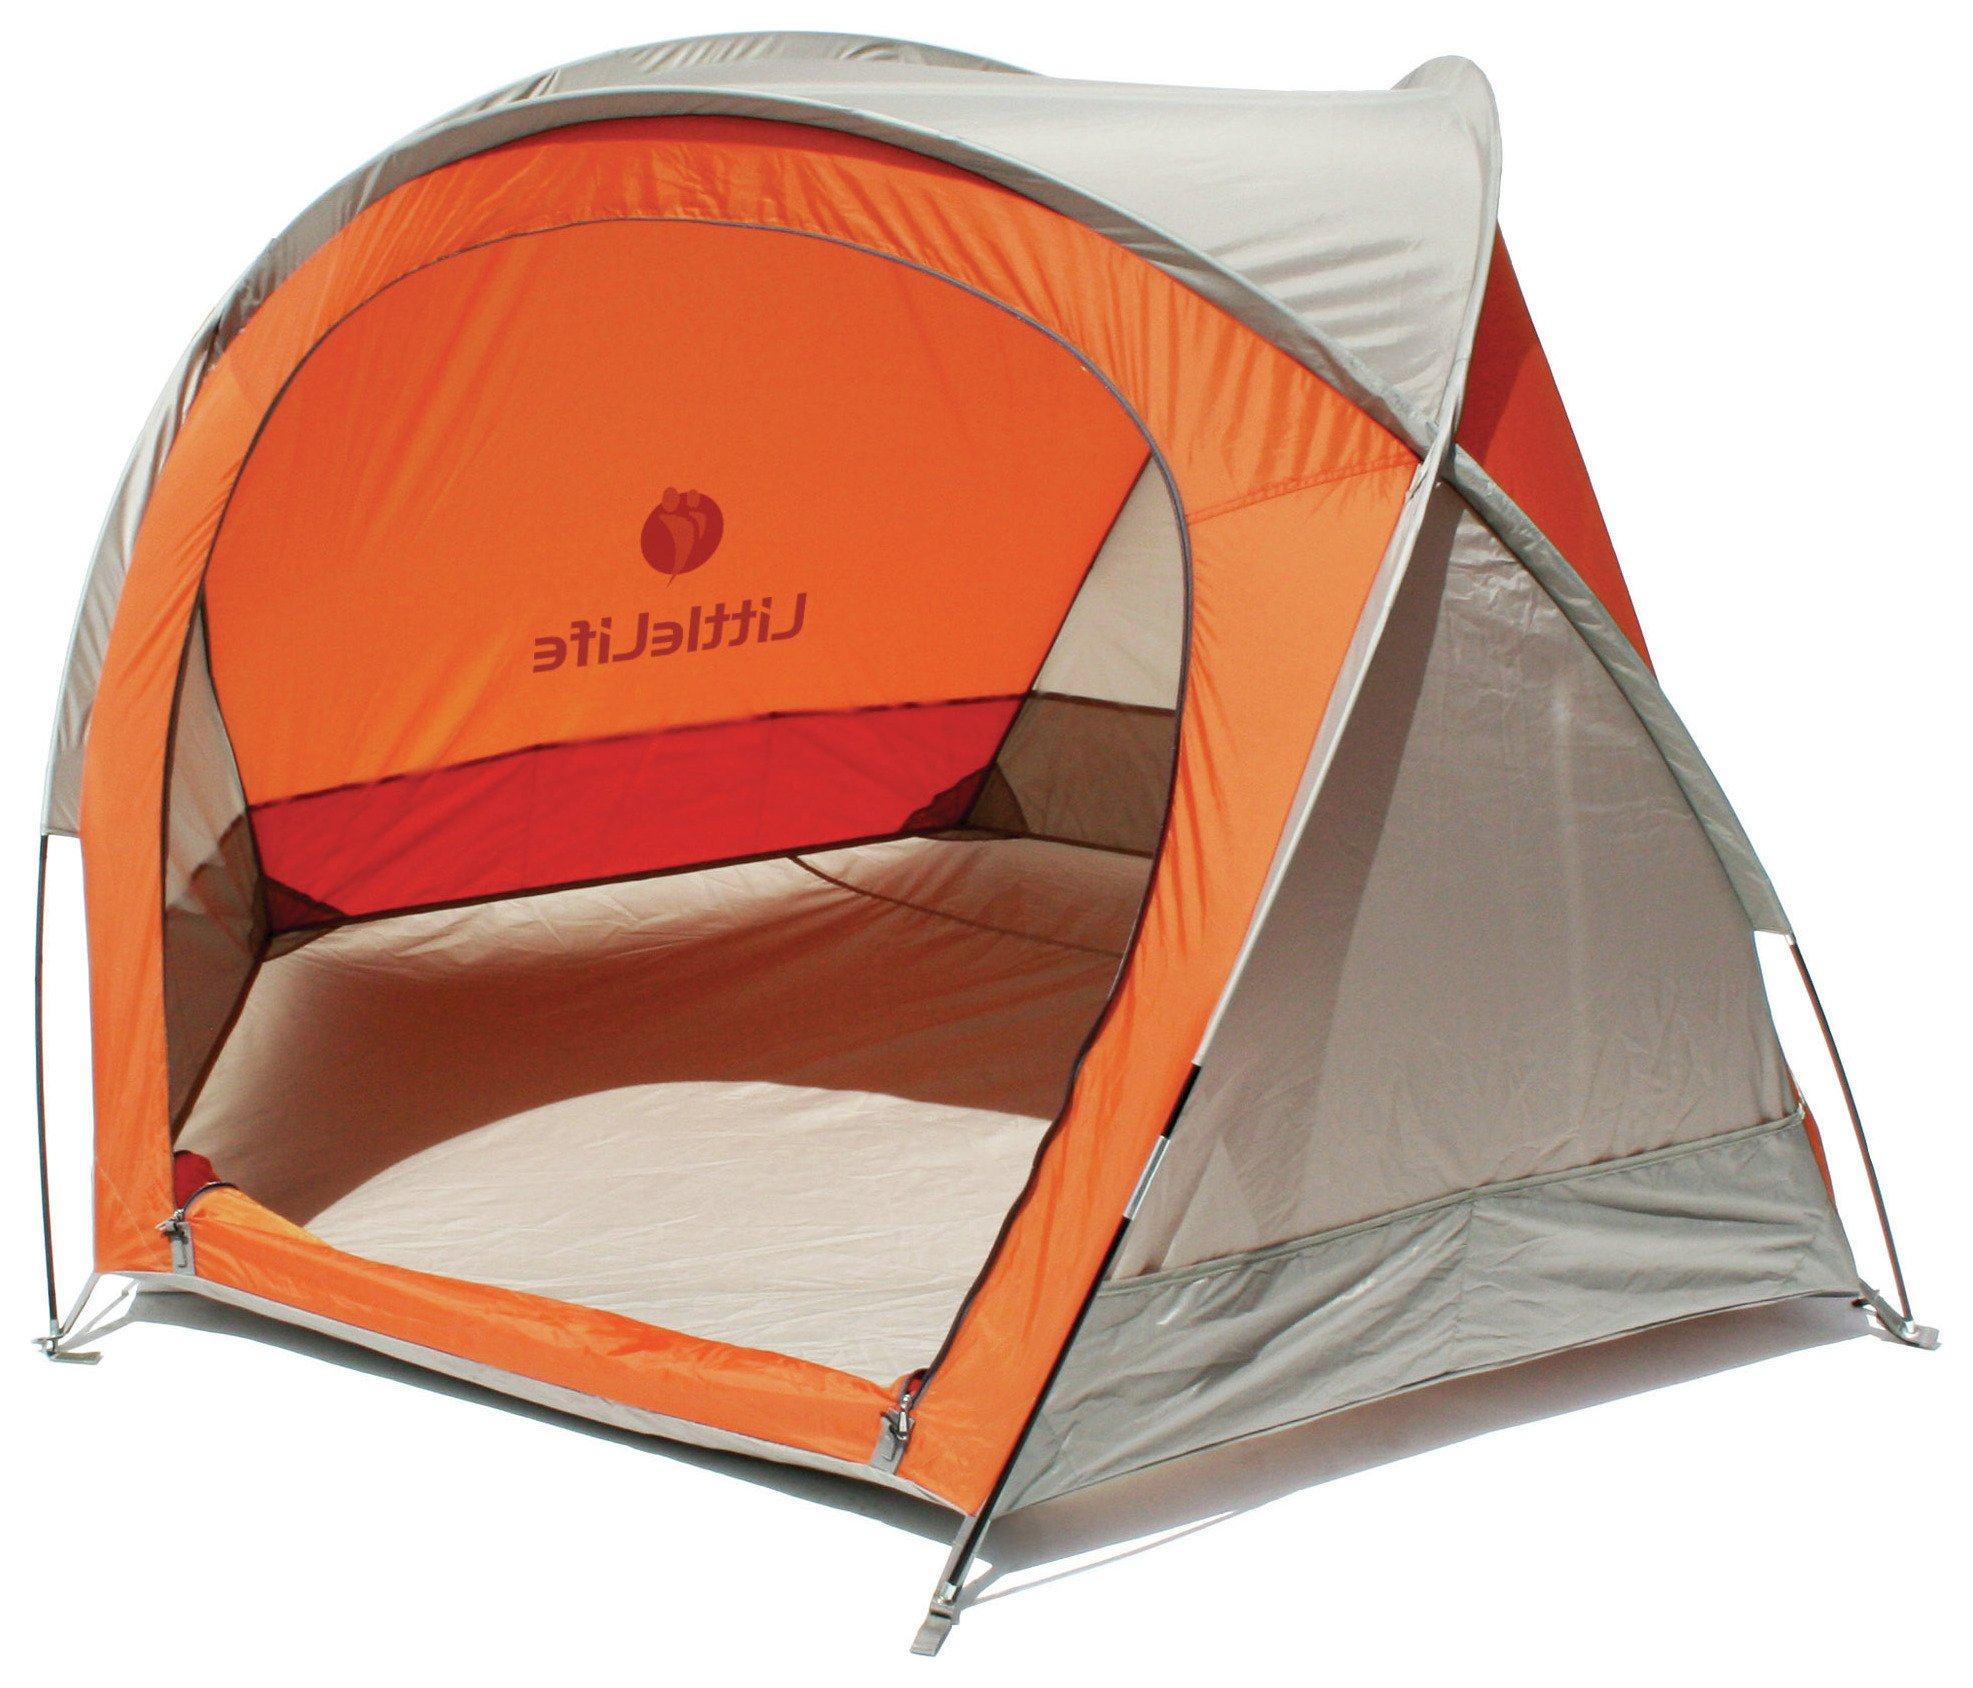 LittleLife 5 Man 1 Room Family Beach Shelter